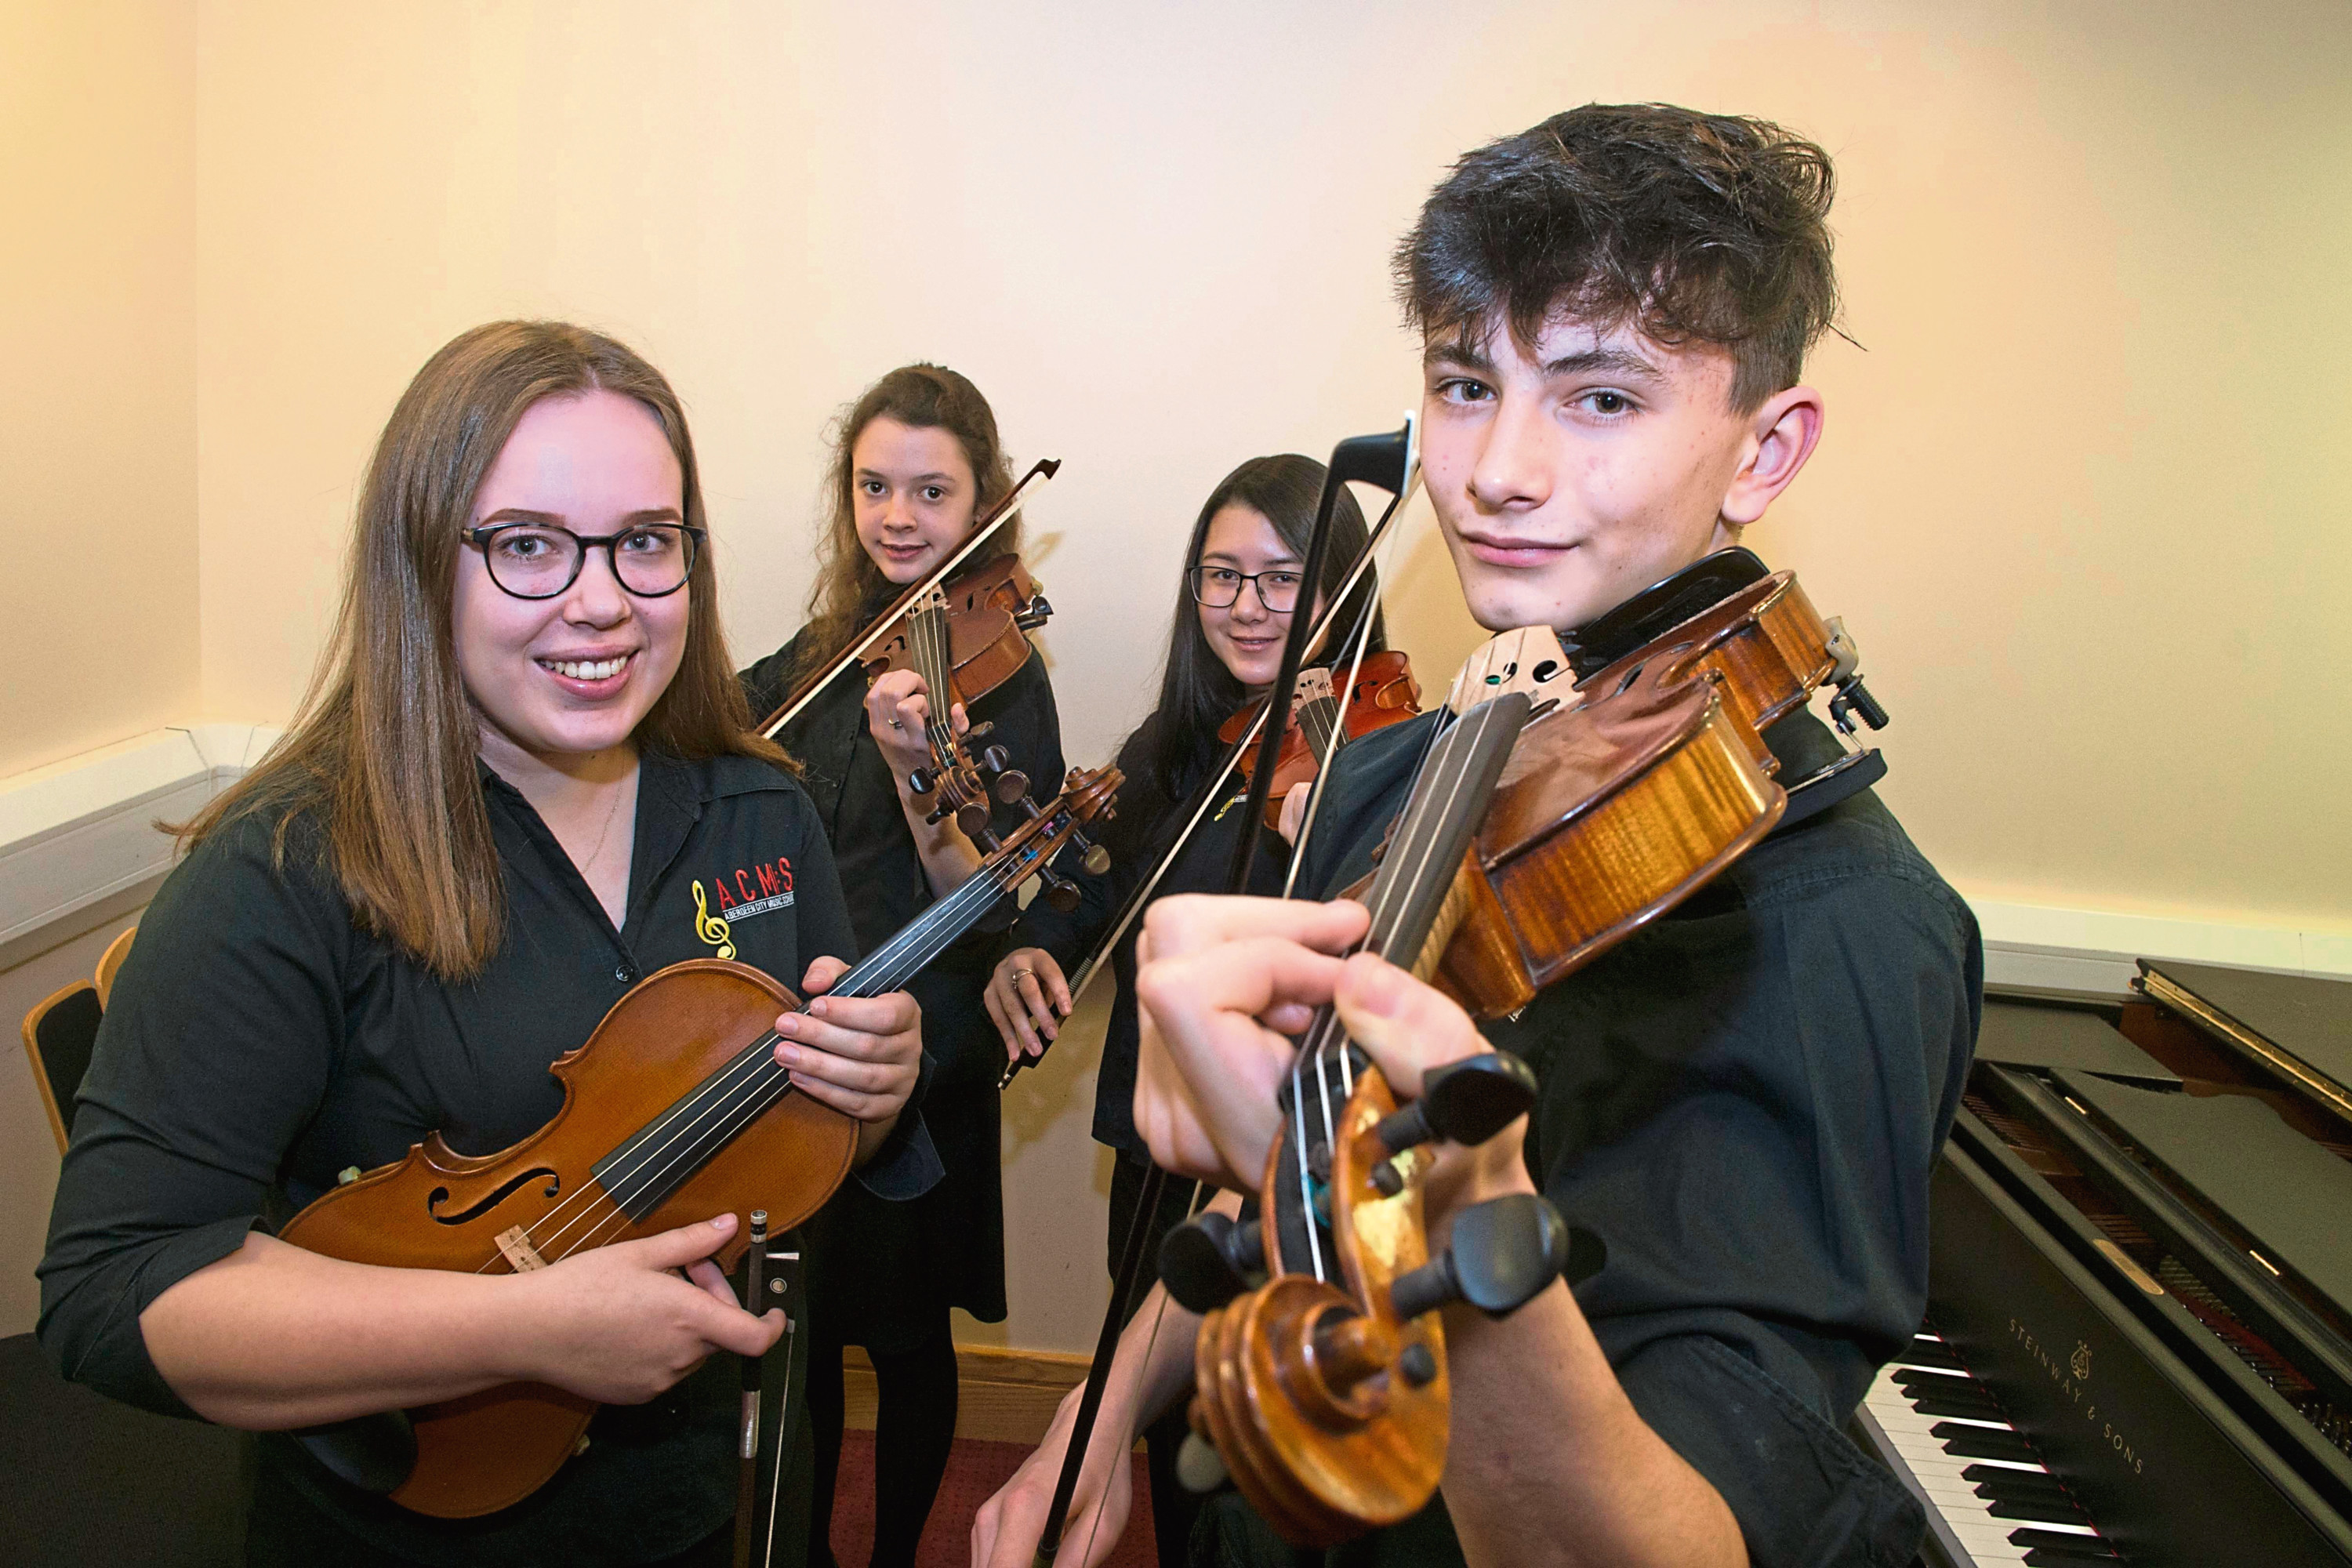 Among the music school's talented ensemble are Ariana Black, Charlotte Slater, Sienna Lee and William Hodi who will entertain audiences with their string pieces